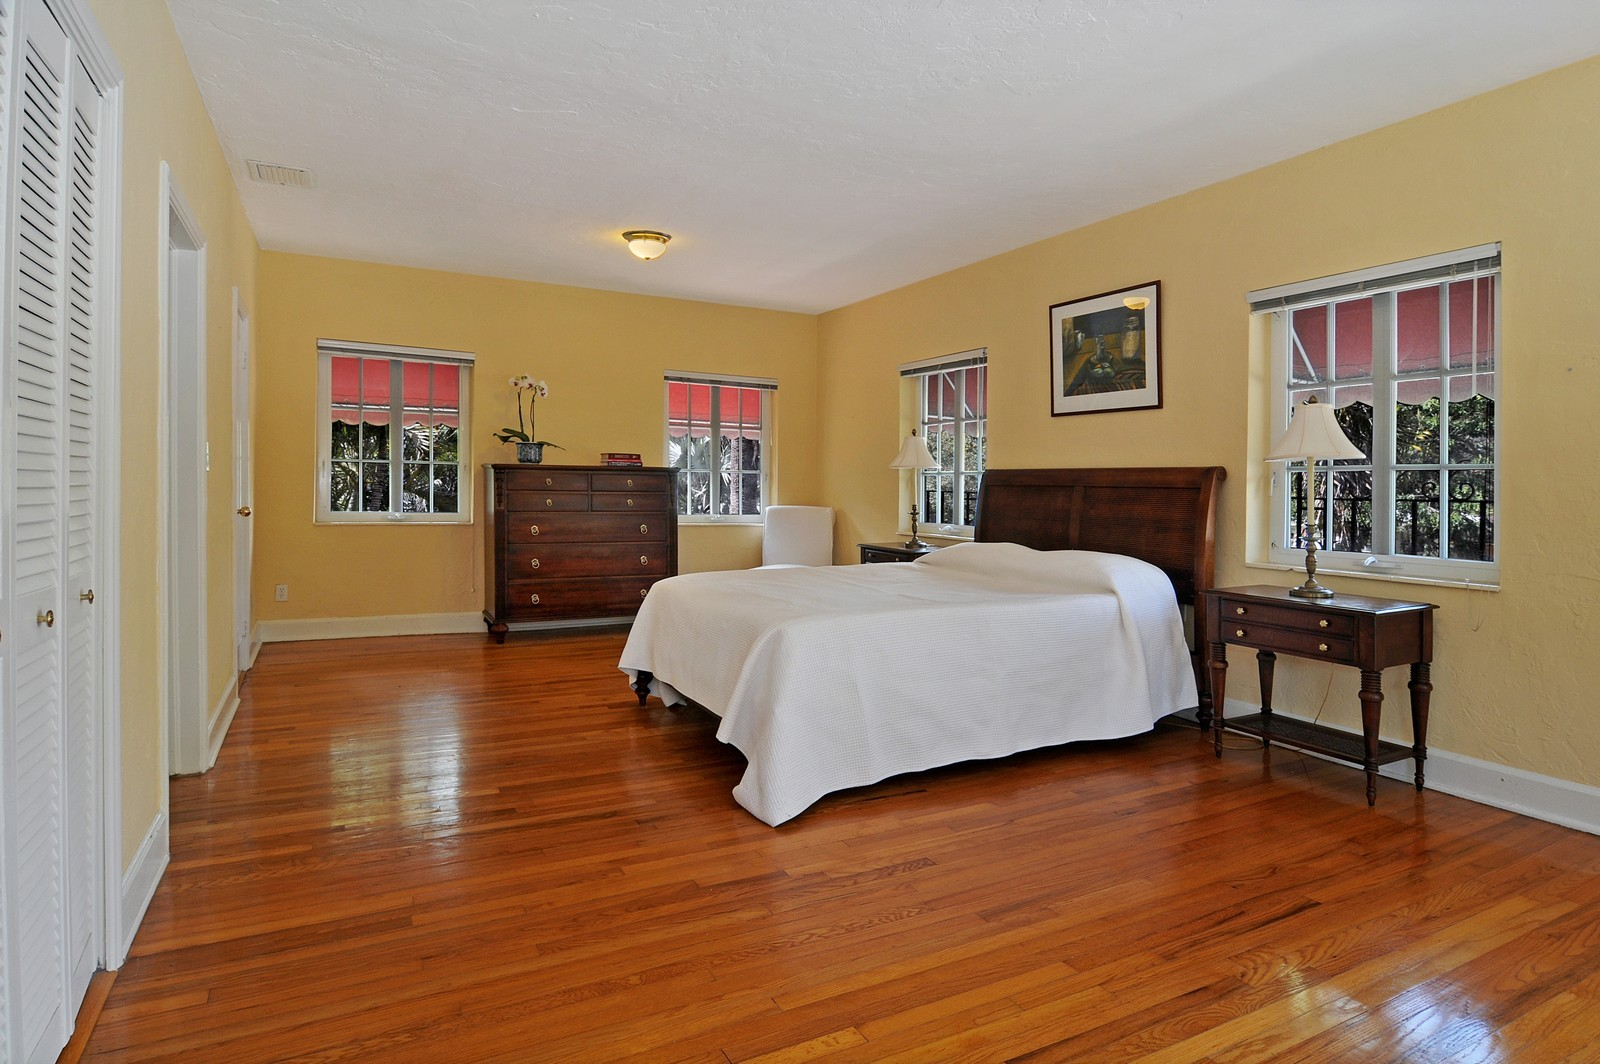 Real Estate Photography - 536 Alhambra, Coral Gables, FL, 33134 - Master Bedroom